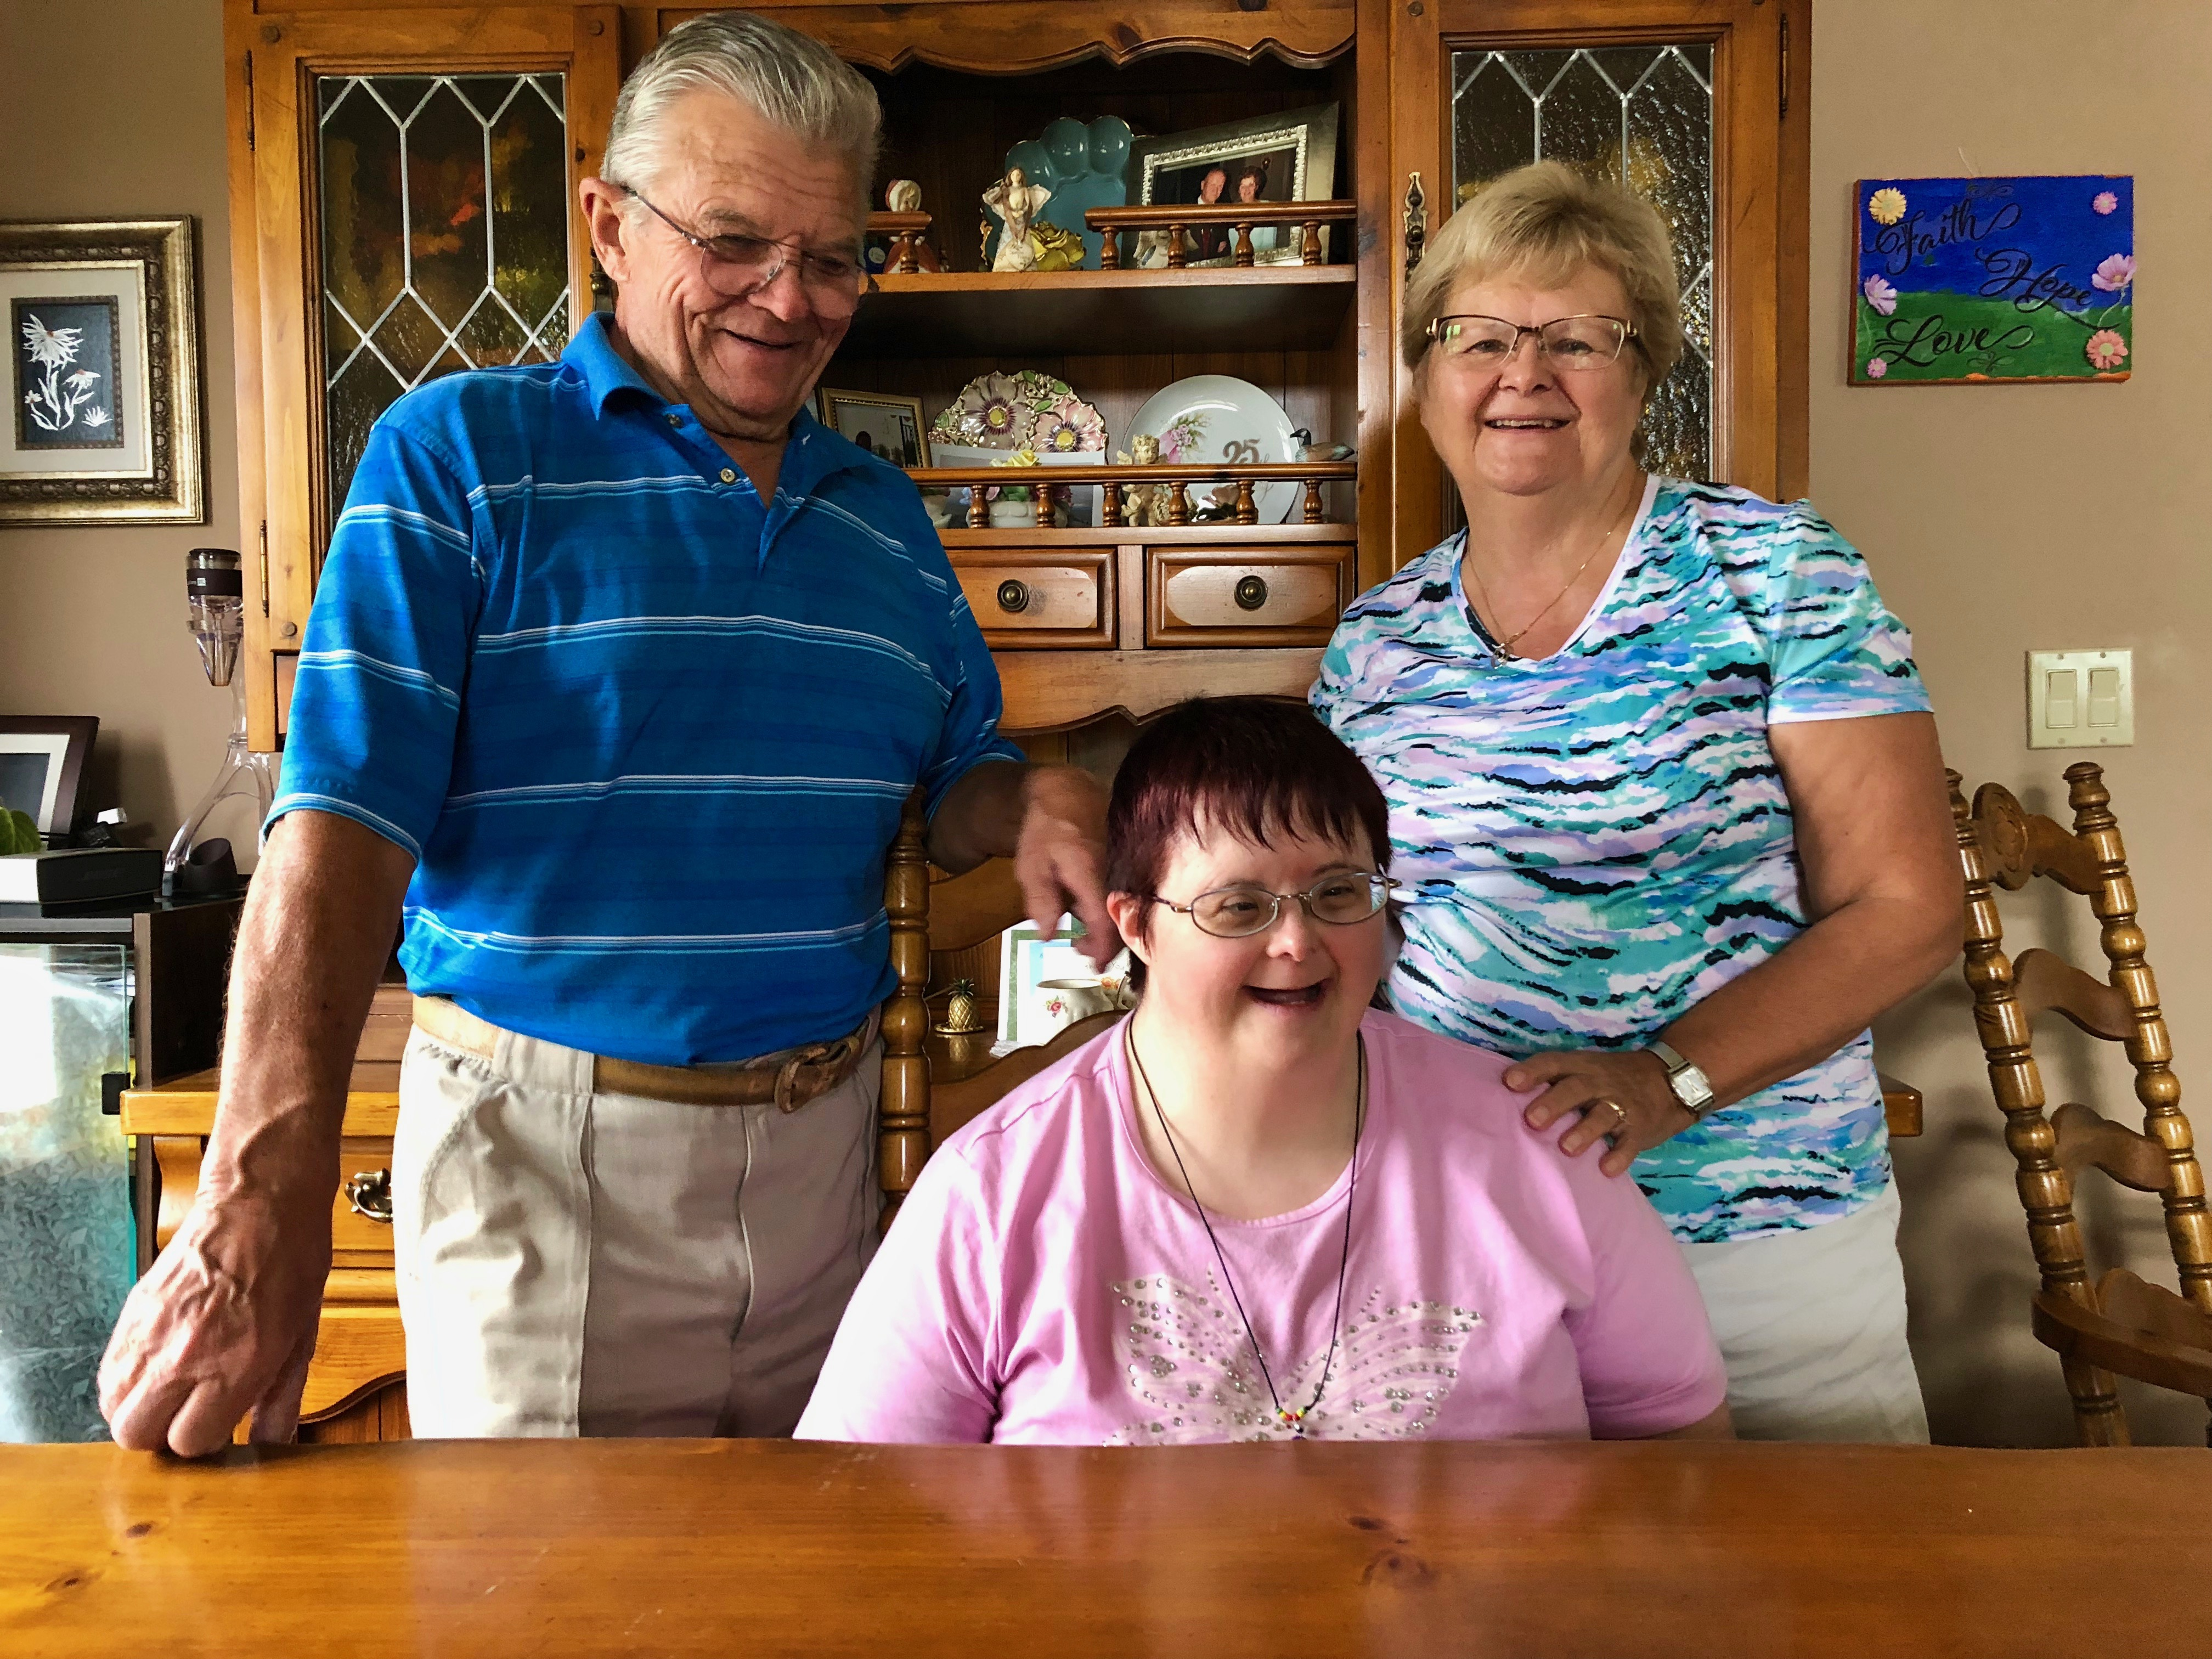 Greg and Lois Bebbington stand behind their daughter Stacy in their dining room.